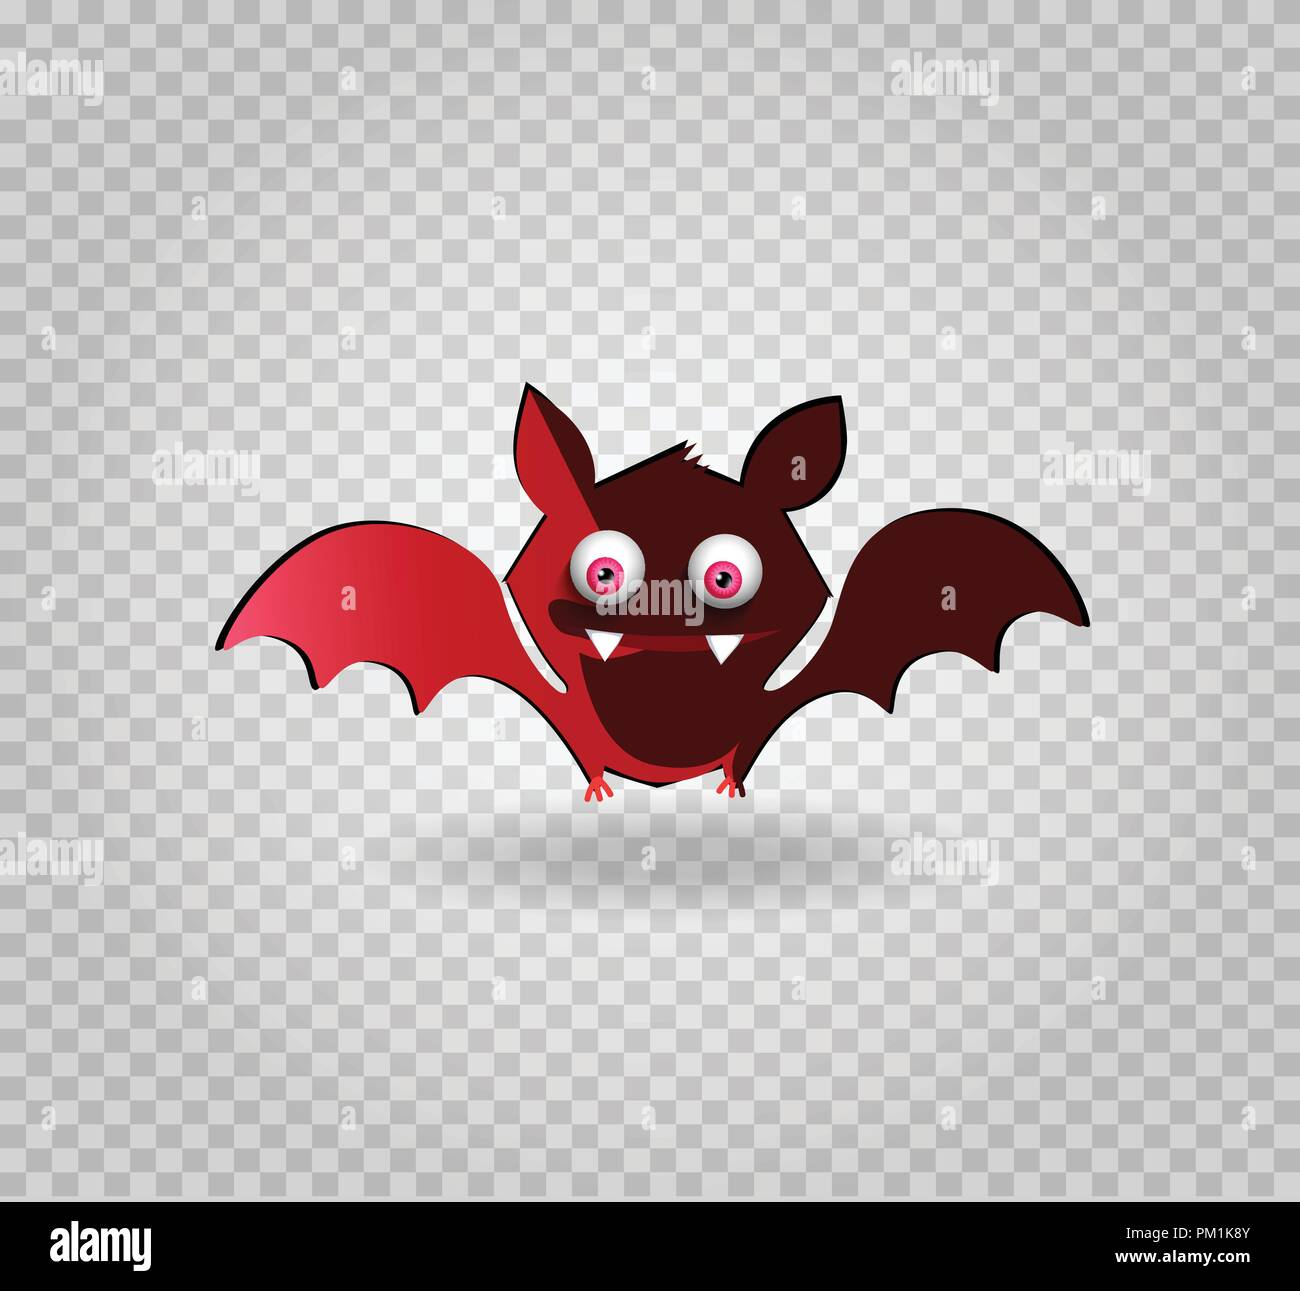 vector illustration of cute funny red smiling bat cartoon character rh alamy com Cute Halloween Clip Art Cute Halloween Clip Art